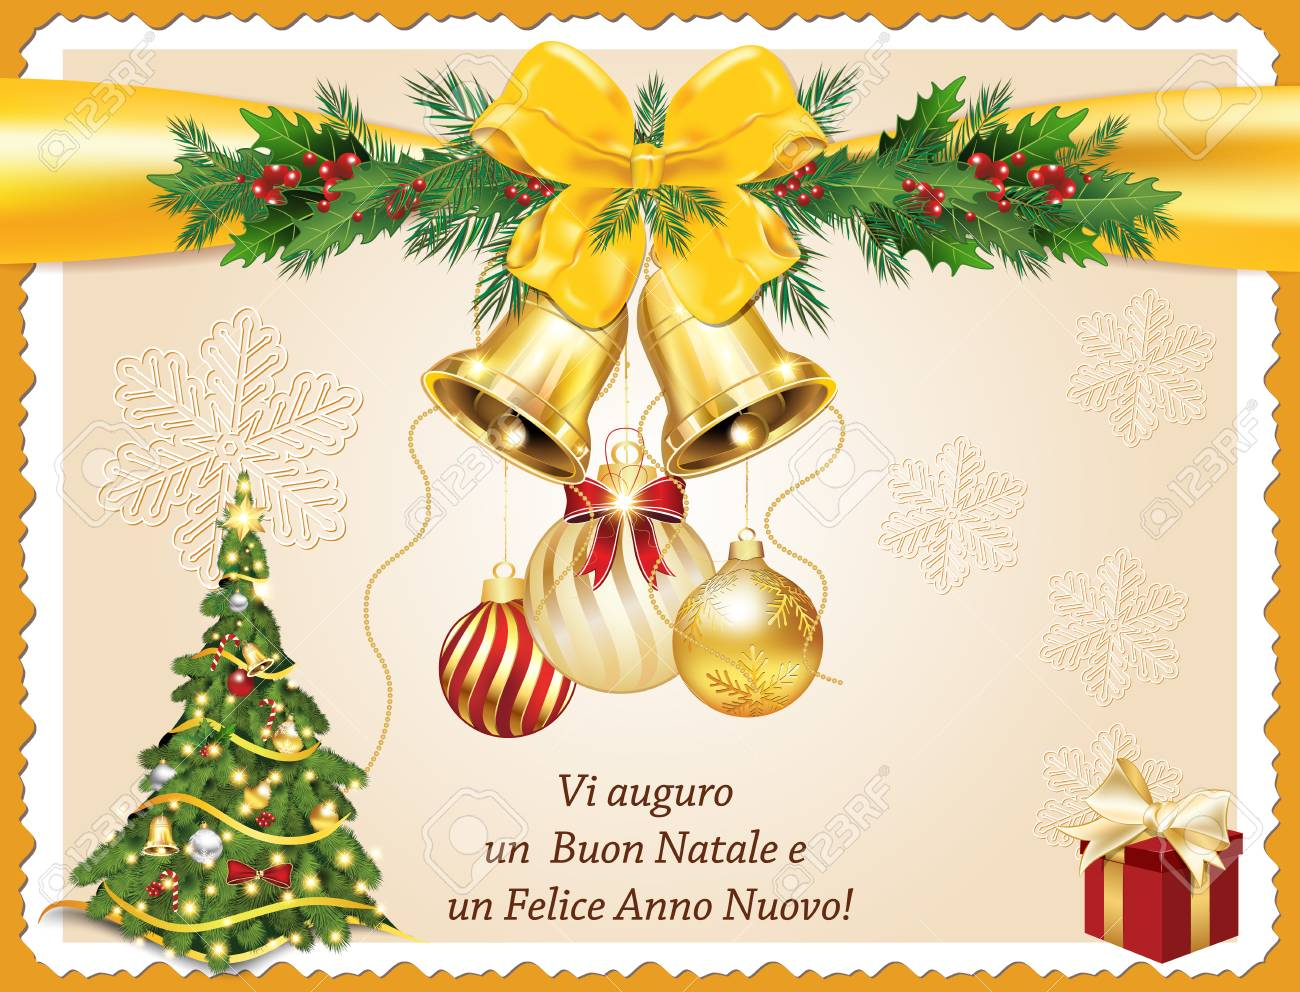 Vi auguro un buon natale e un felice anno nuovo italian seasons italian seasons greeting for winter holidays we wish you merry christmas and happy new year printable greeting card m4hsunfo